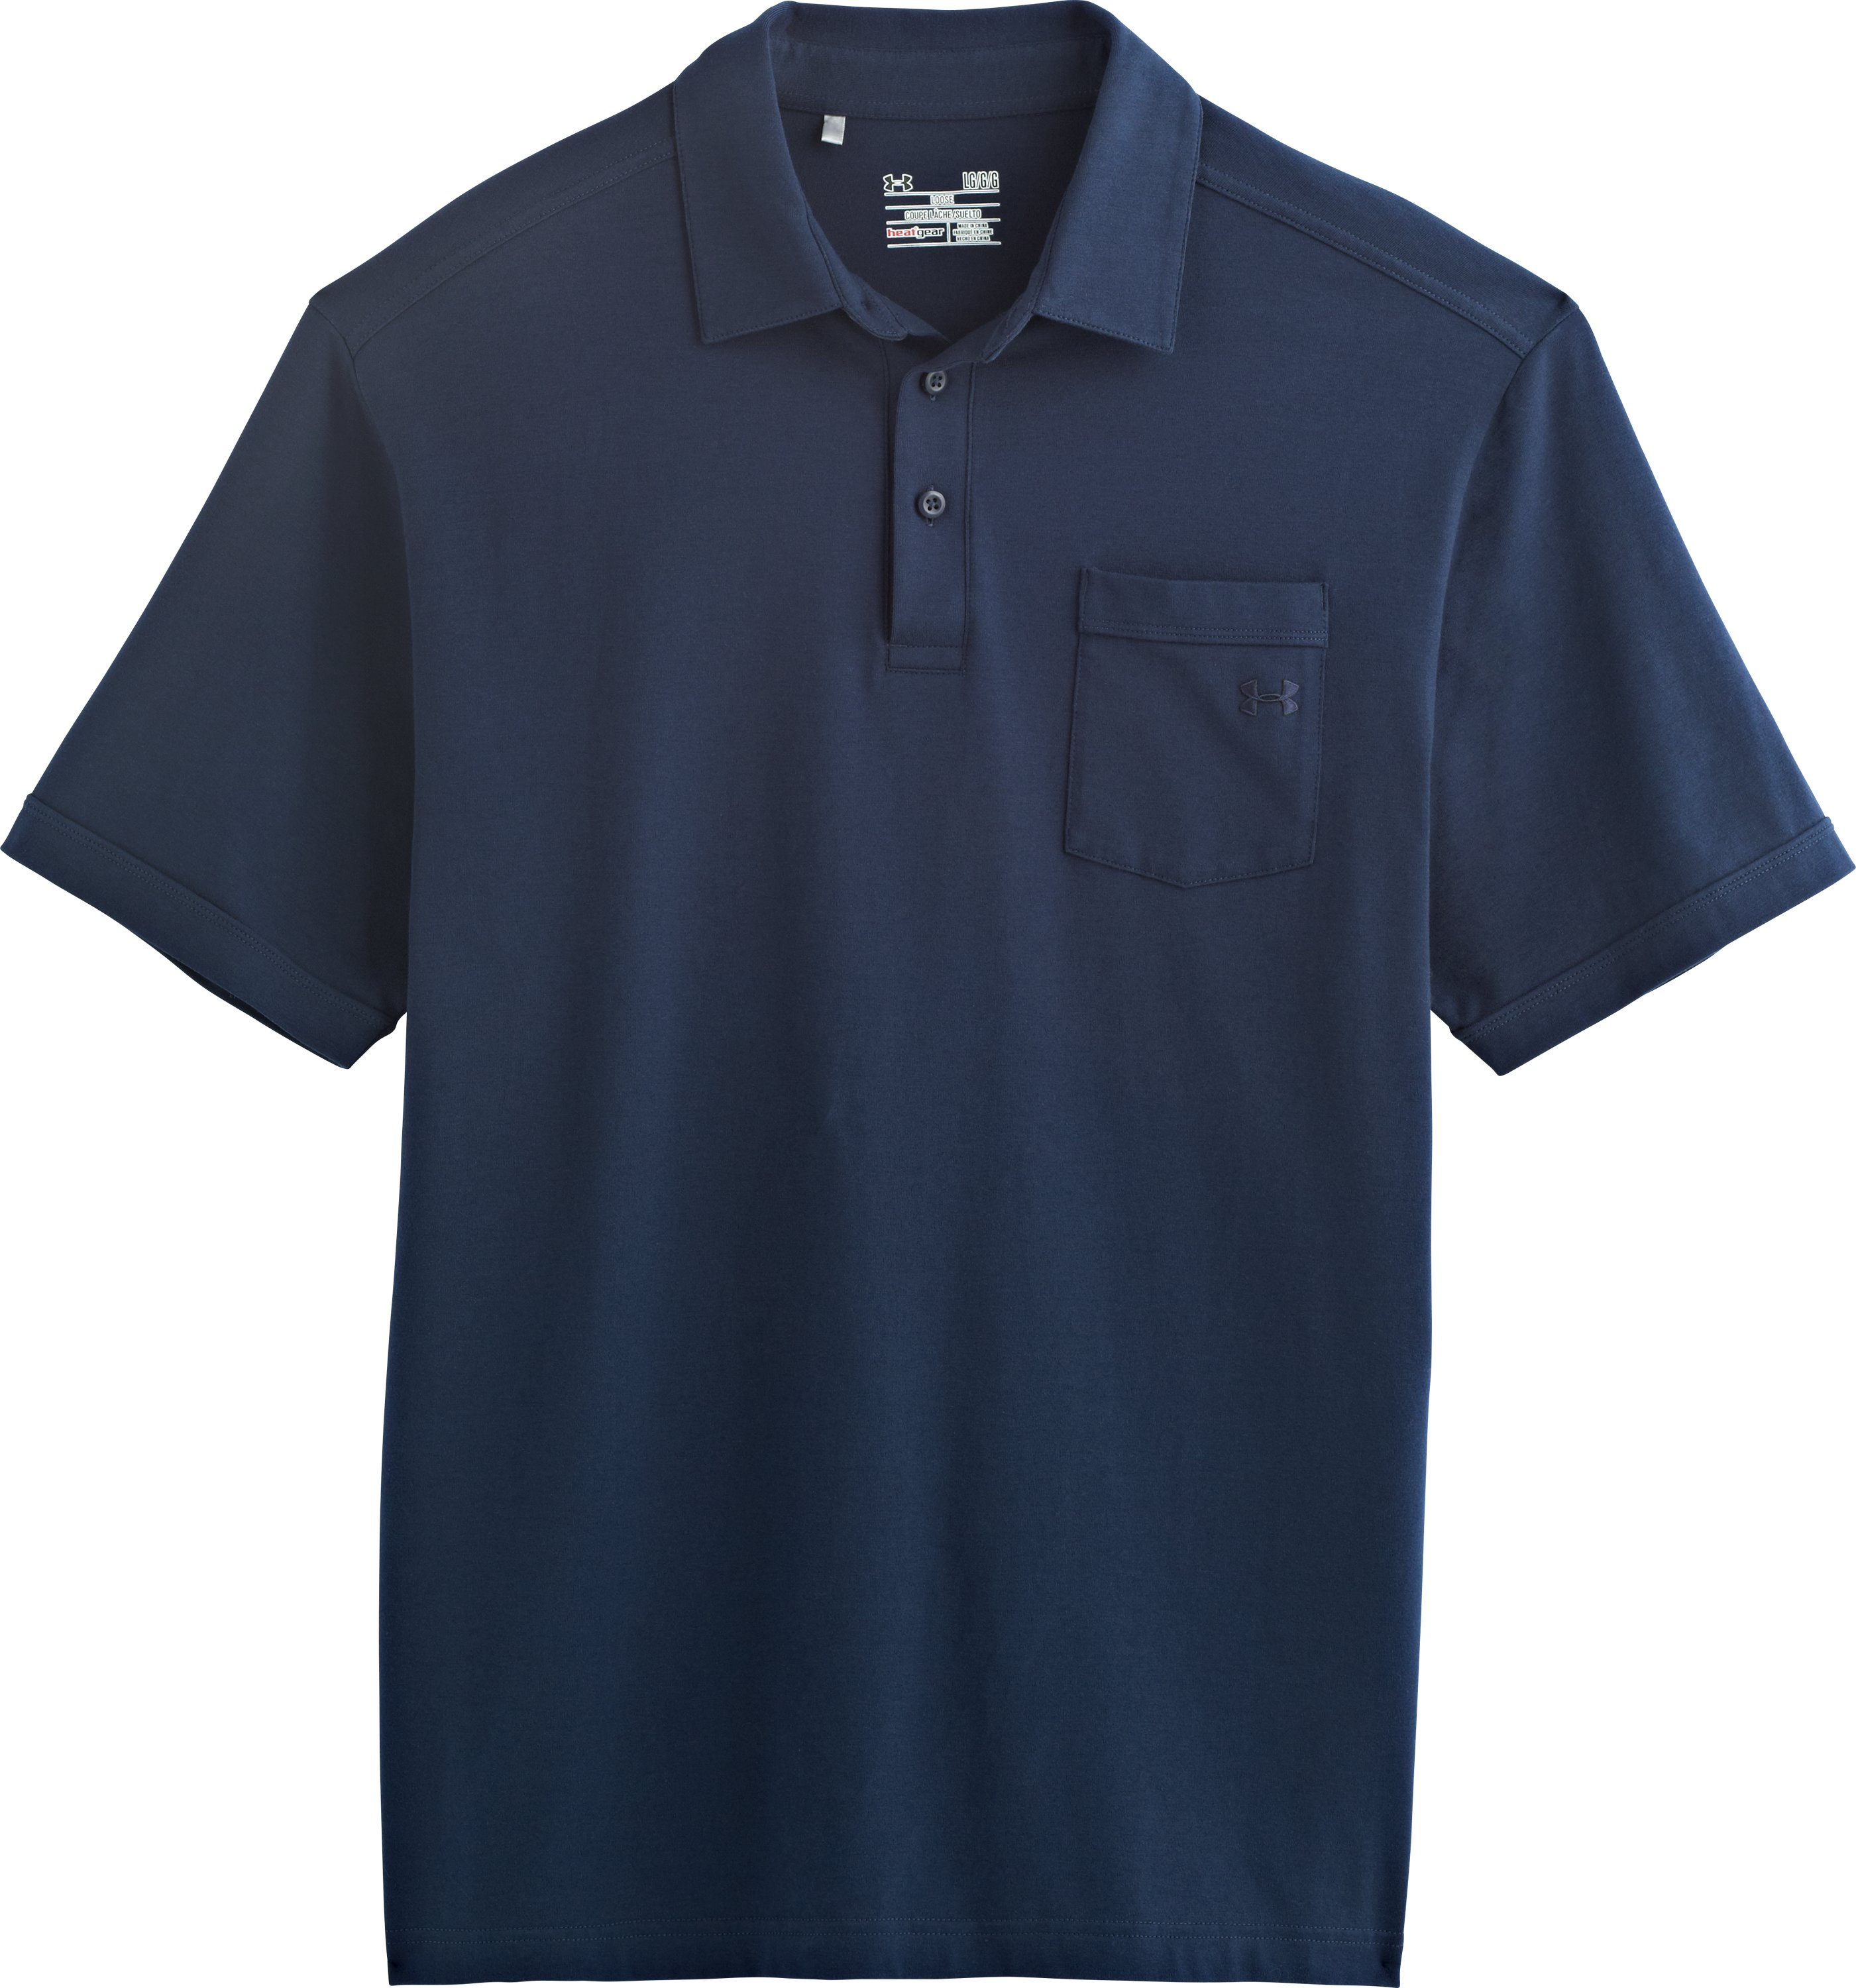 Men's Charged Cotton® Pocket Polo, Academy, Laydown